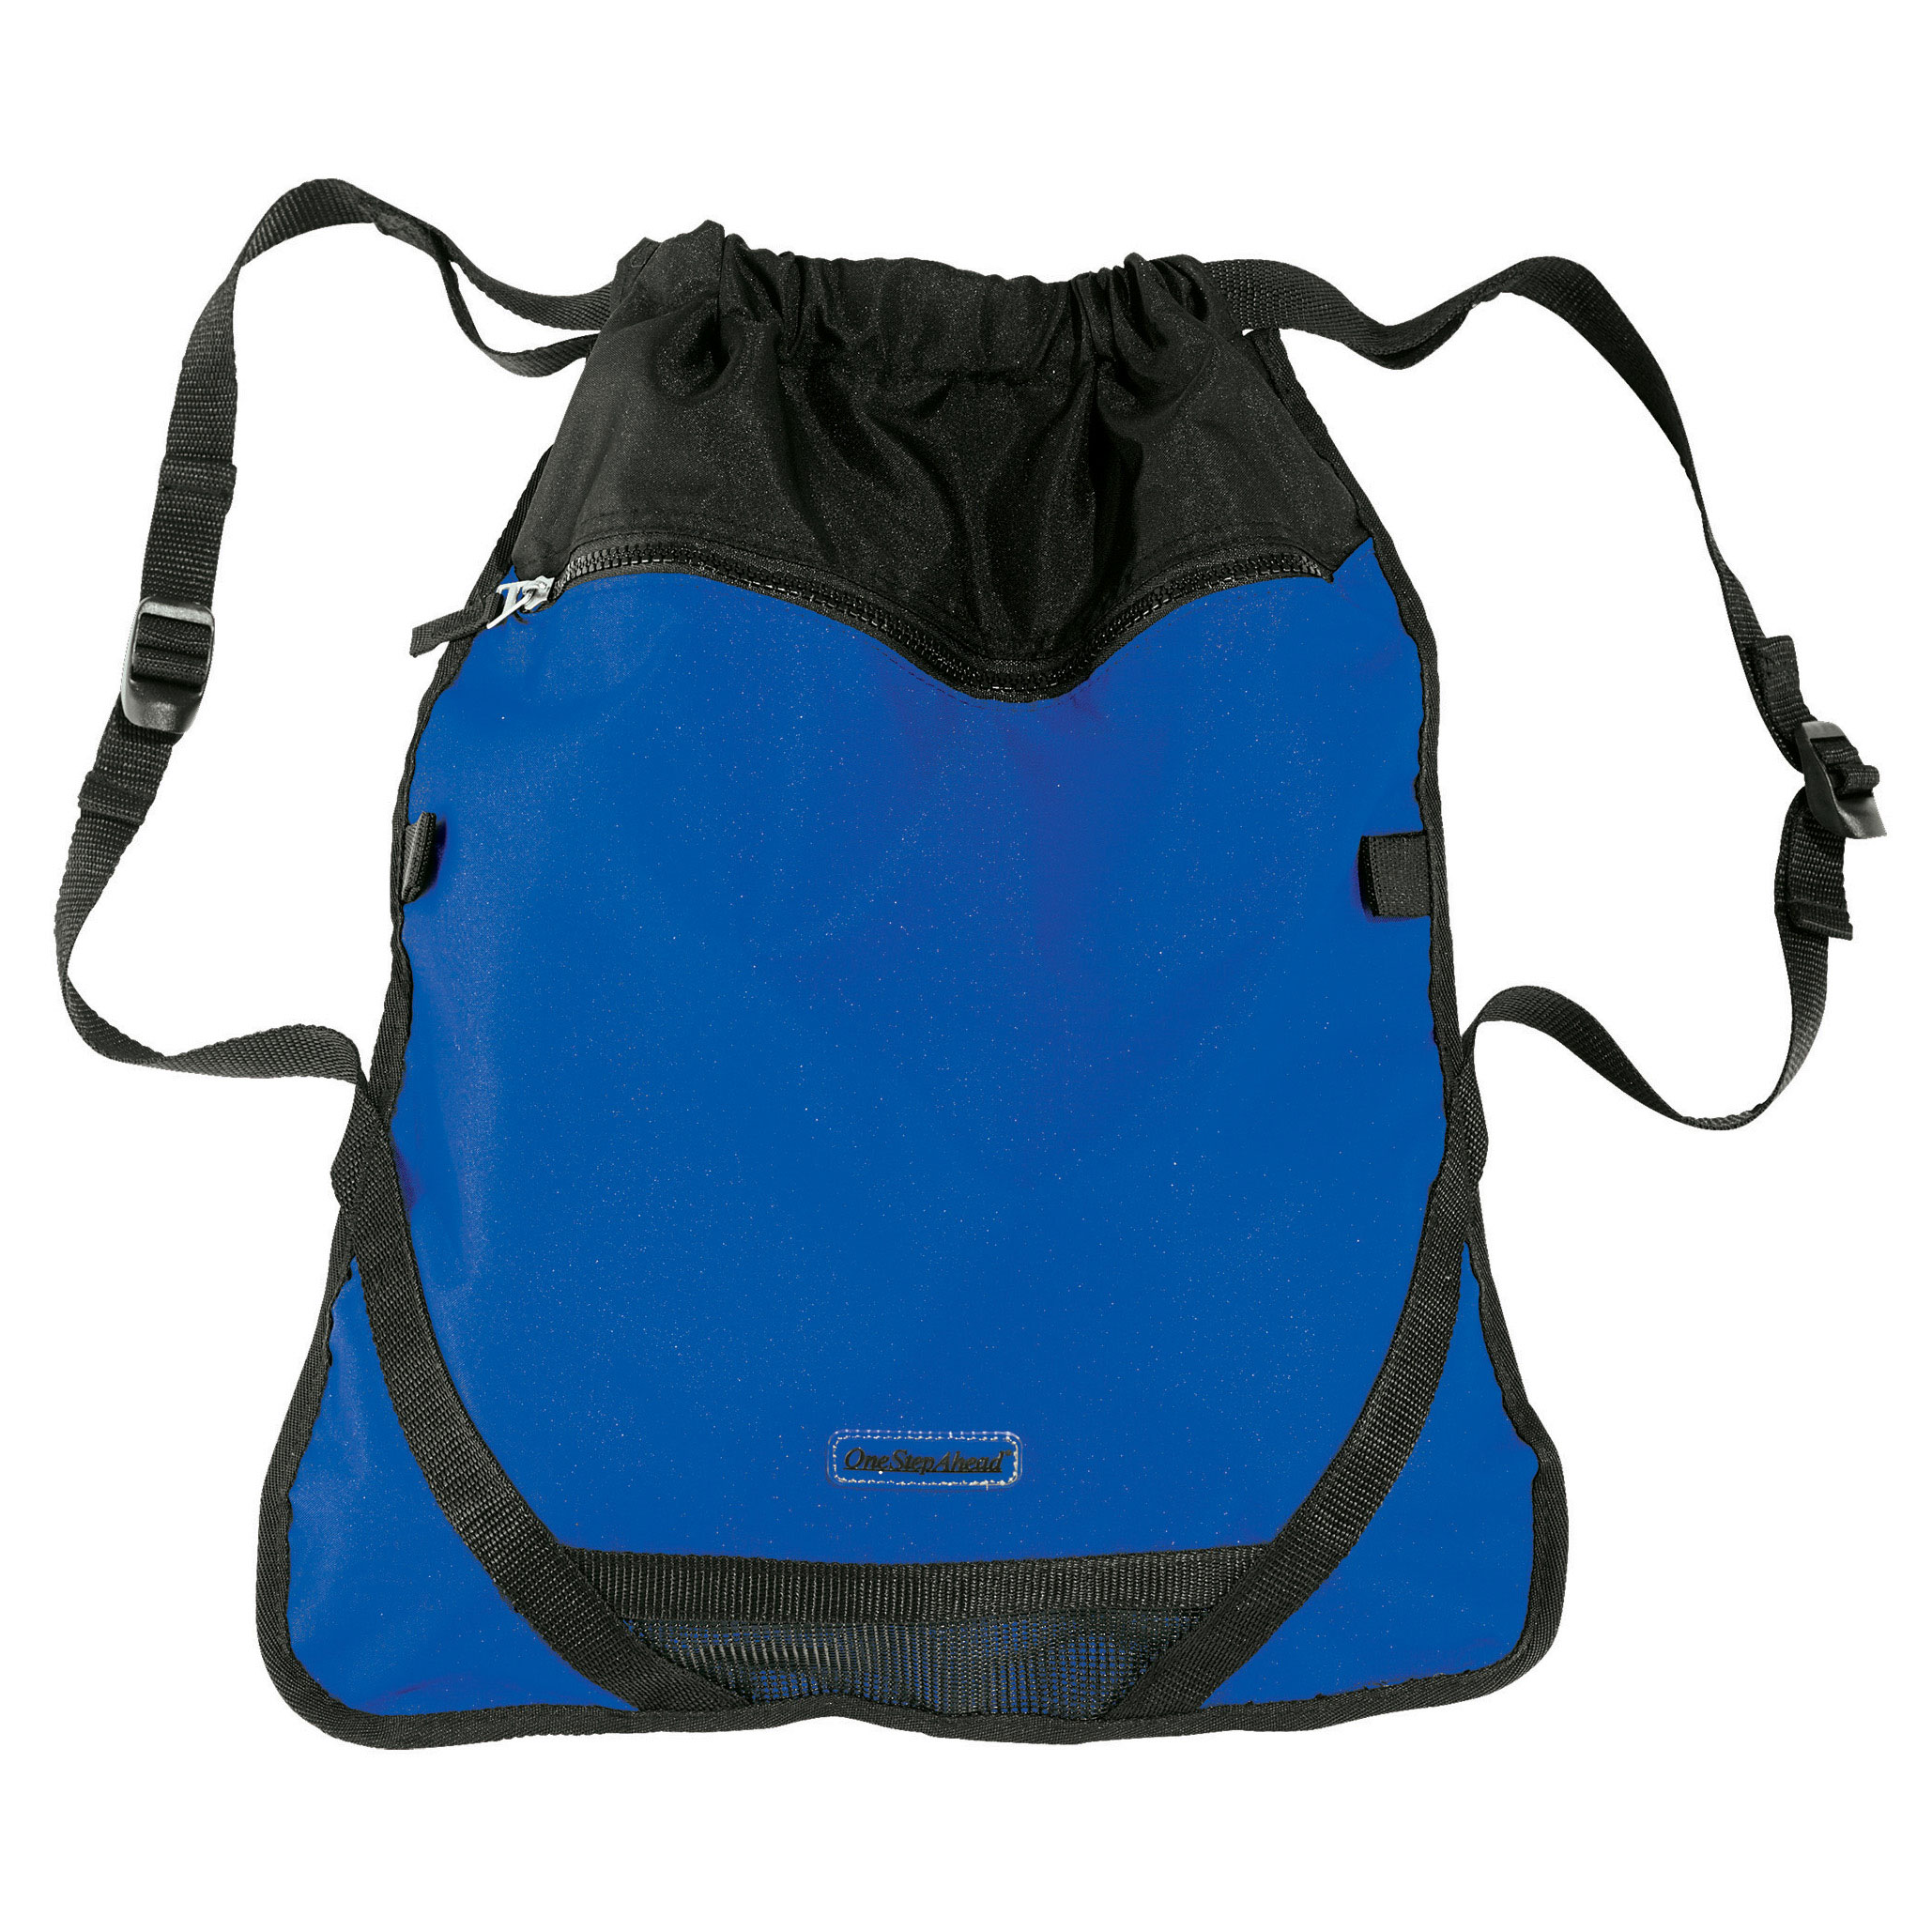 One Step Ahead Children's Blue Athletic Backpack - Lightweight Drawstring Bag